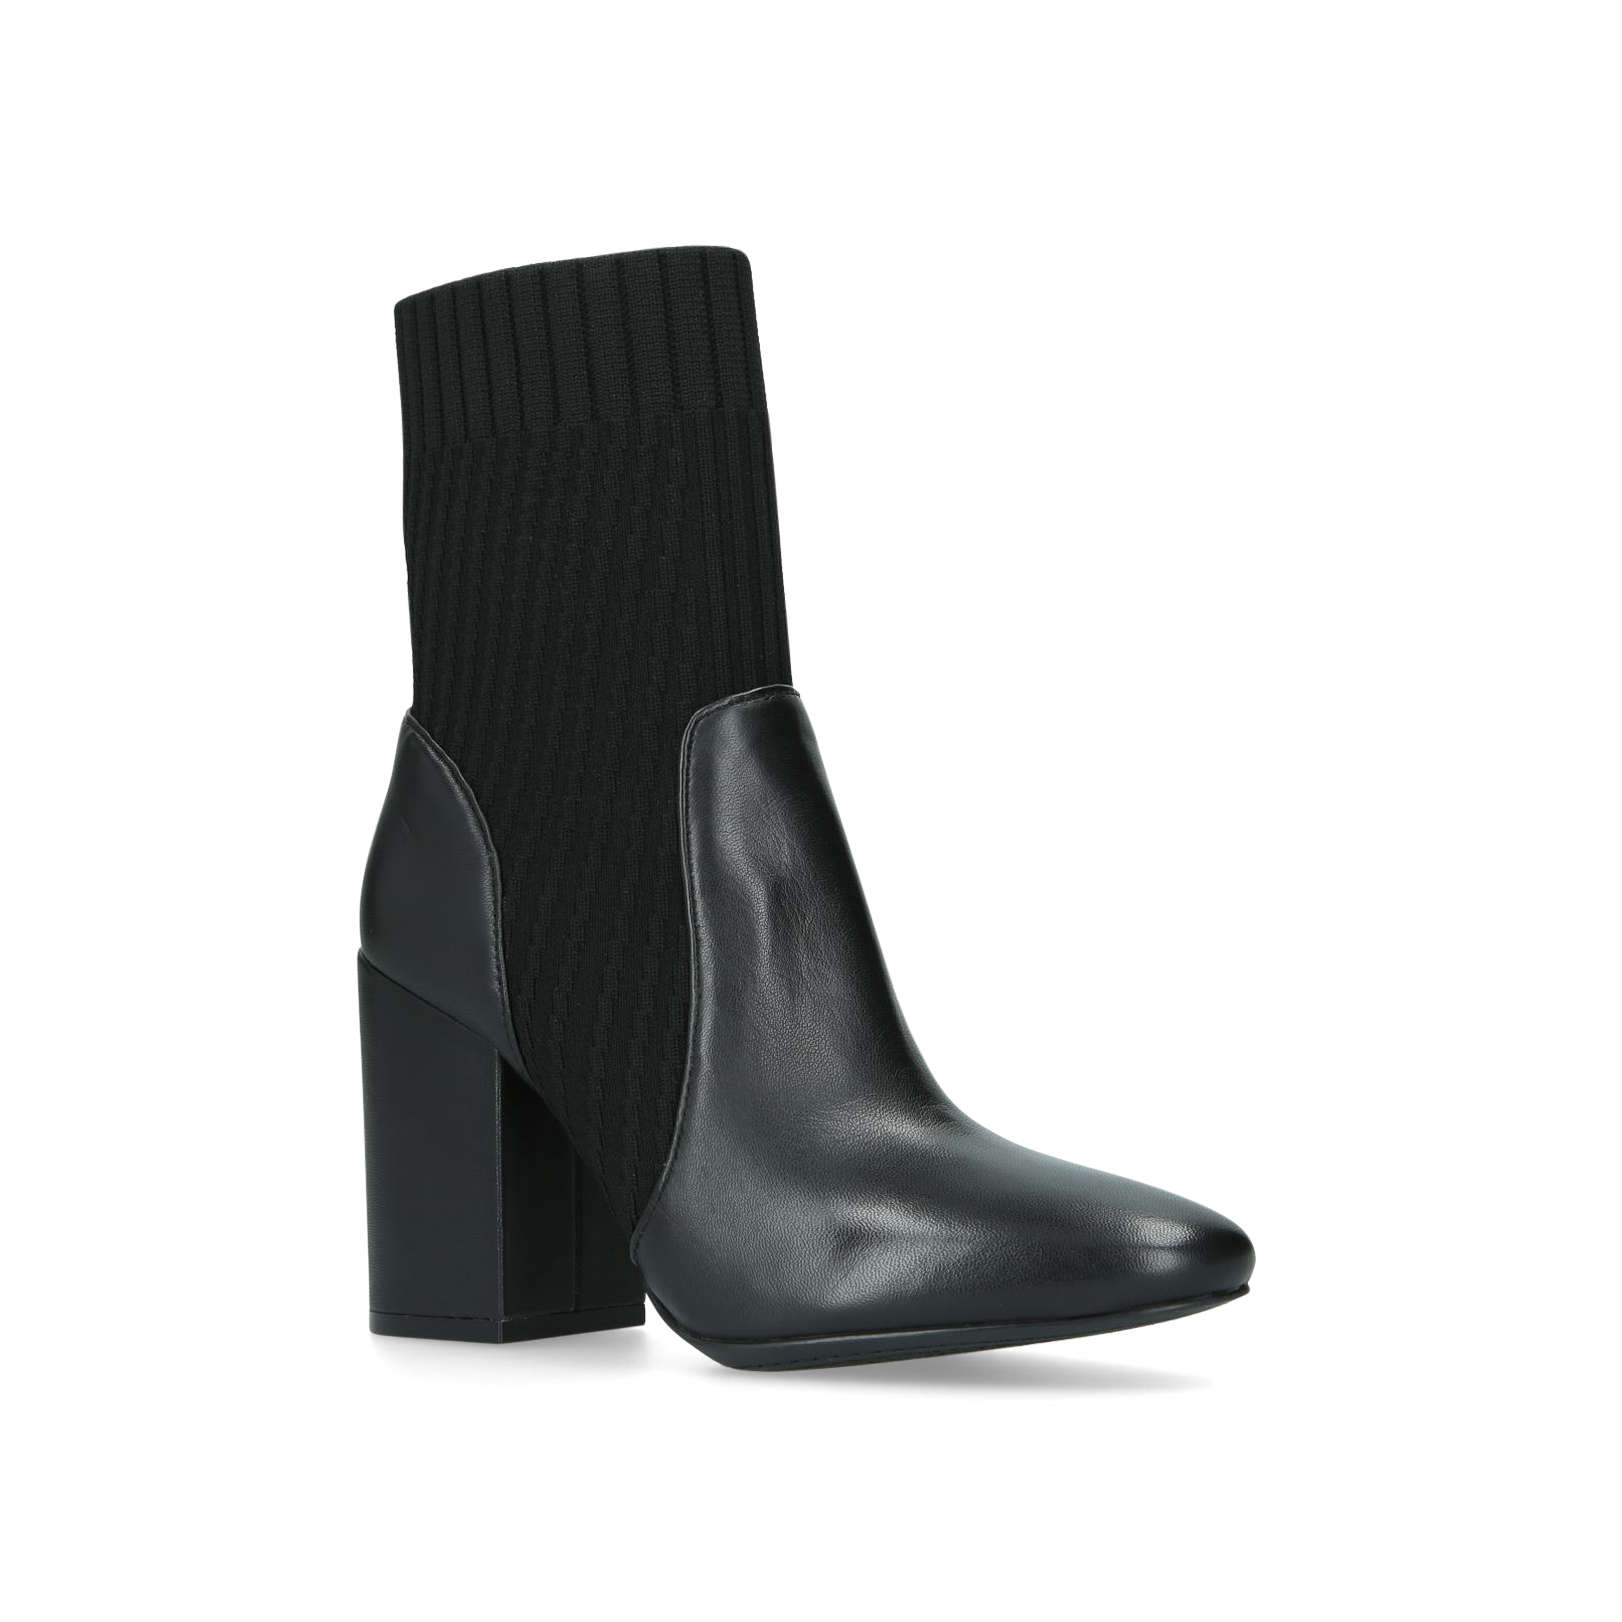 ed618337d7f DIANDRA Diandra 100 Mm Heel Ankle Boots Vince Camuto Black by VINCE CAMUTO